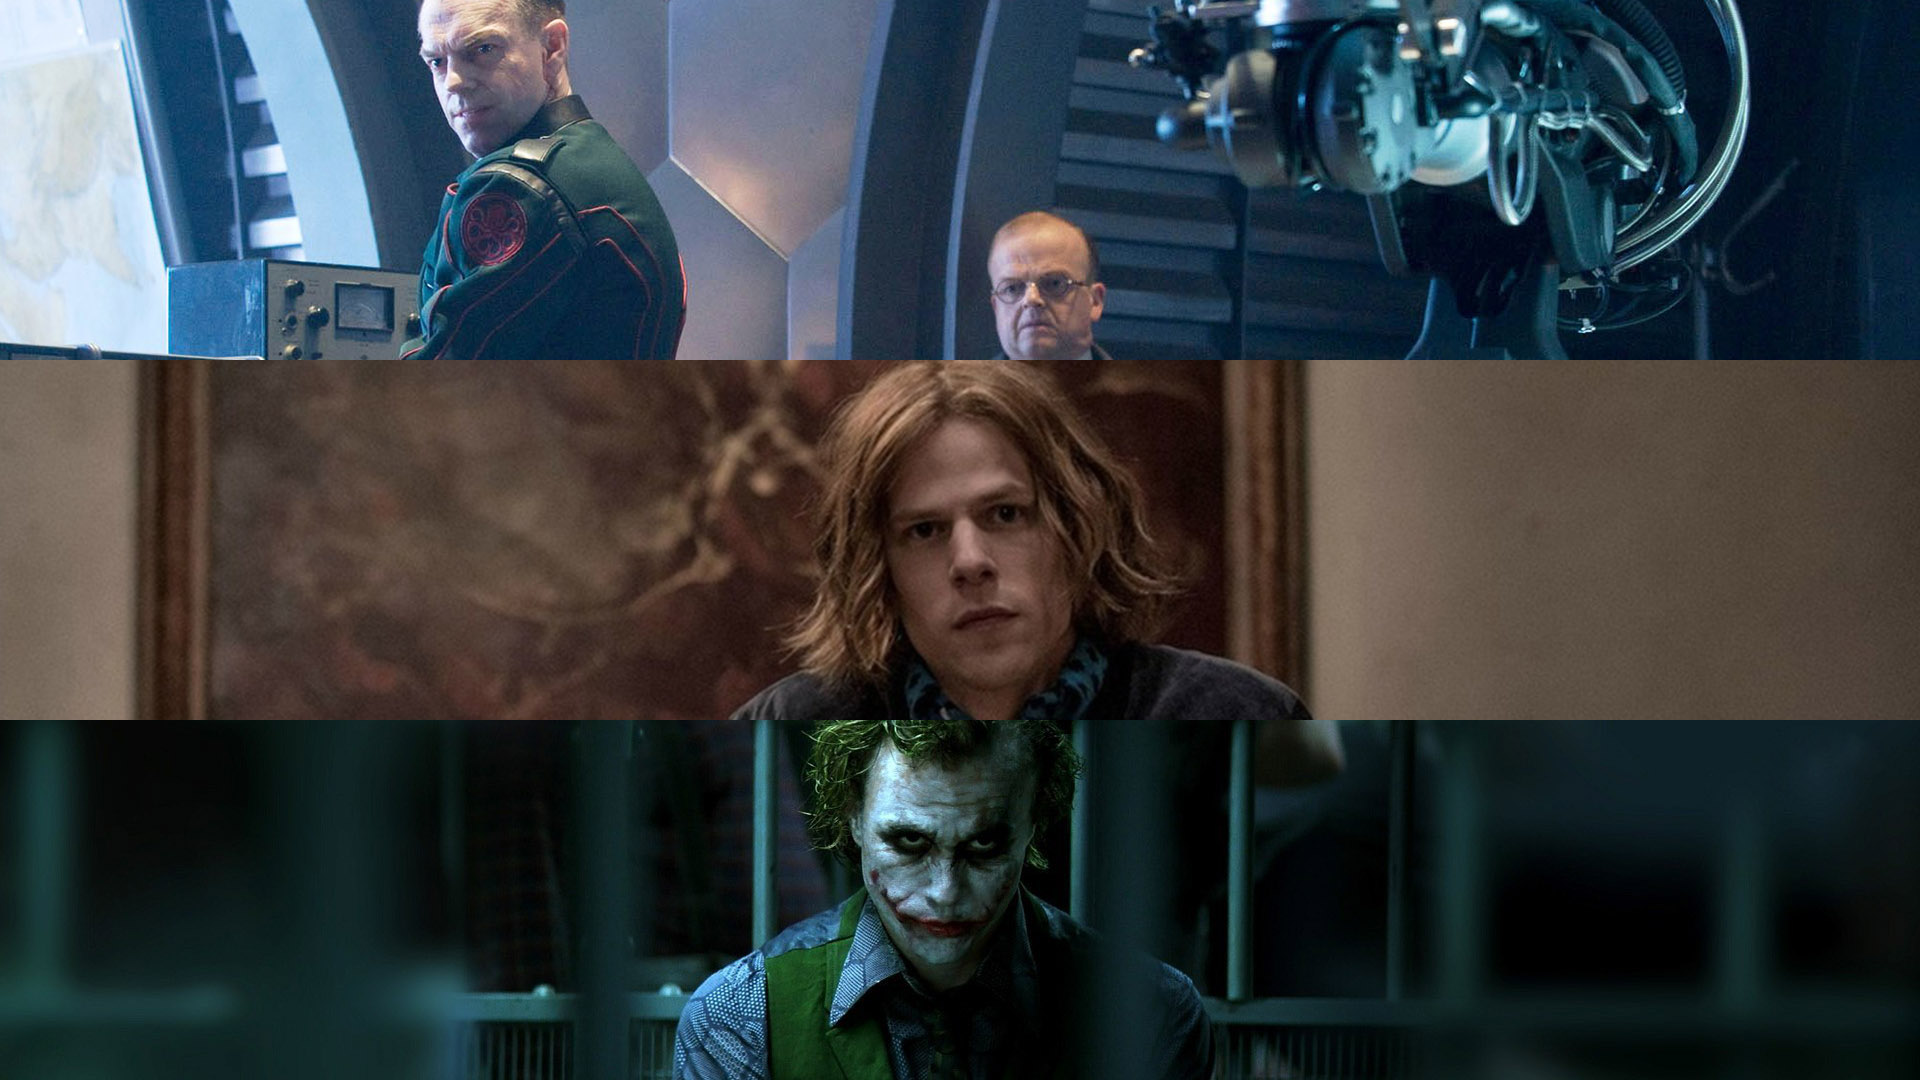 Hydra, Lex Luthor, and Joker -- these enemies never become unmotivated no matter how much setback they experience.